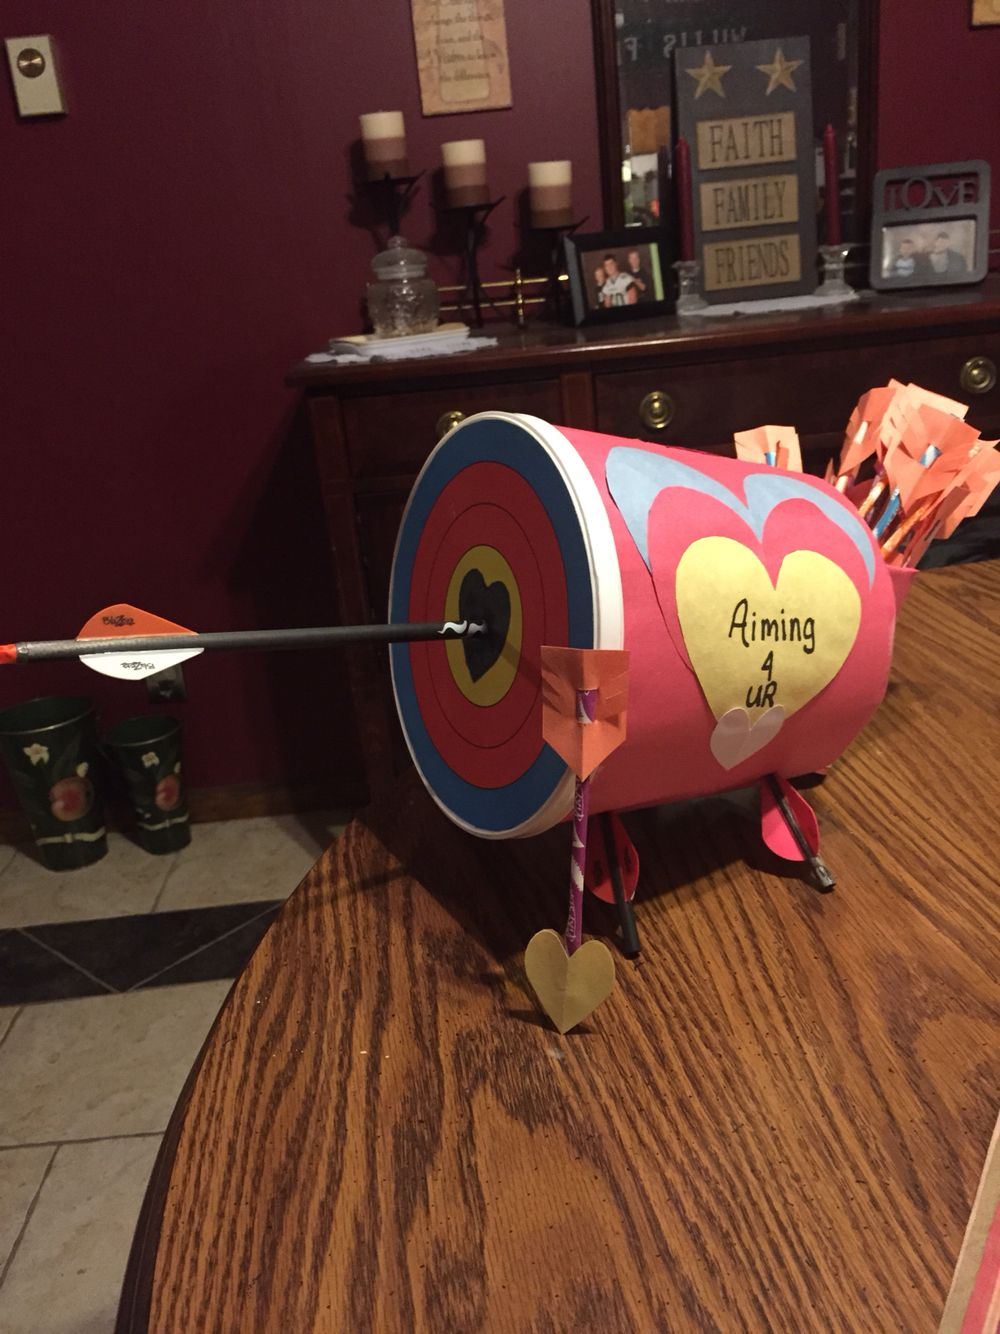 Valentine S Day Archery Box We Made For Our 9 Yr Old Son He Shoots Competitive 3d Archery Boys Valentines Boxes Valentine Day Boxes Valentines For Boys